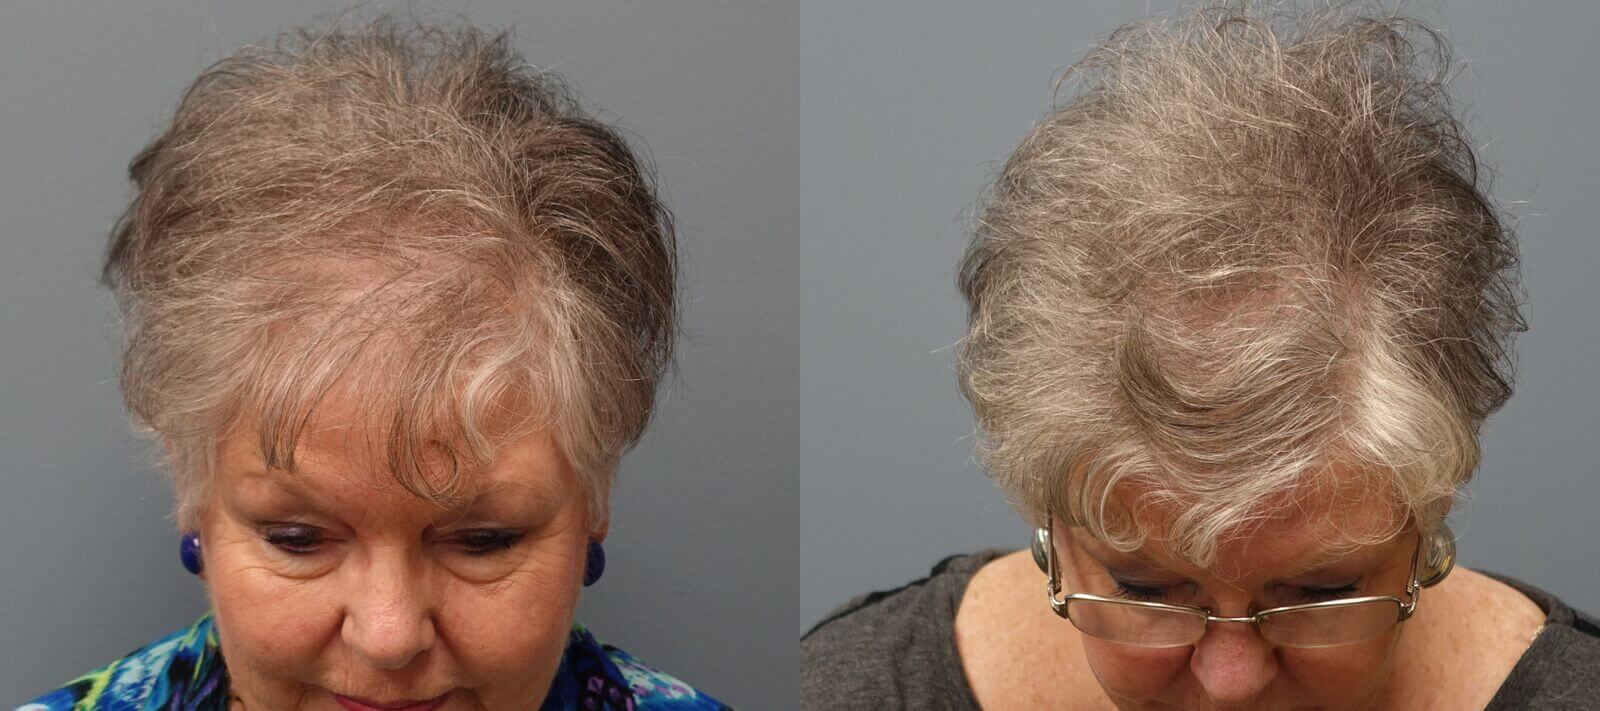 Hair transplant with Neograft 66 year old 1,325 grafts Before and 11 months after